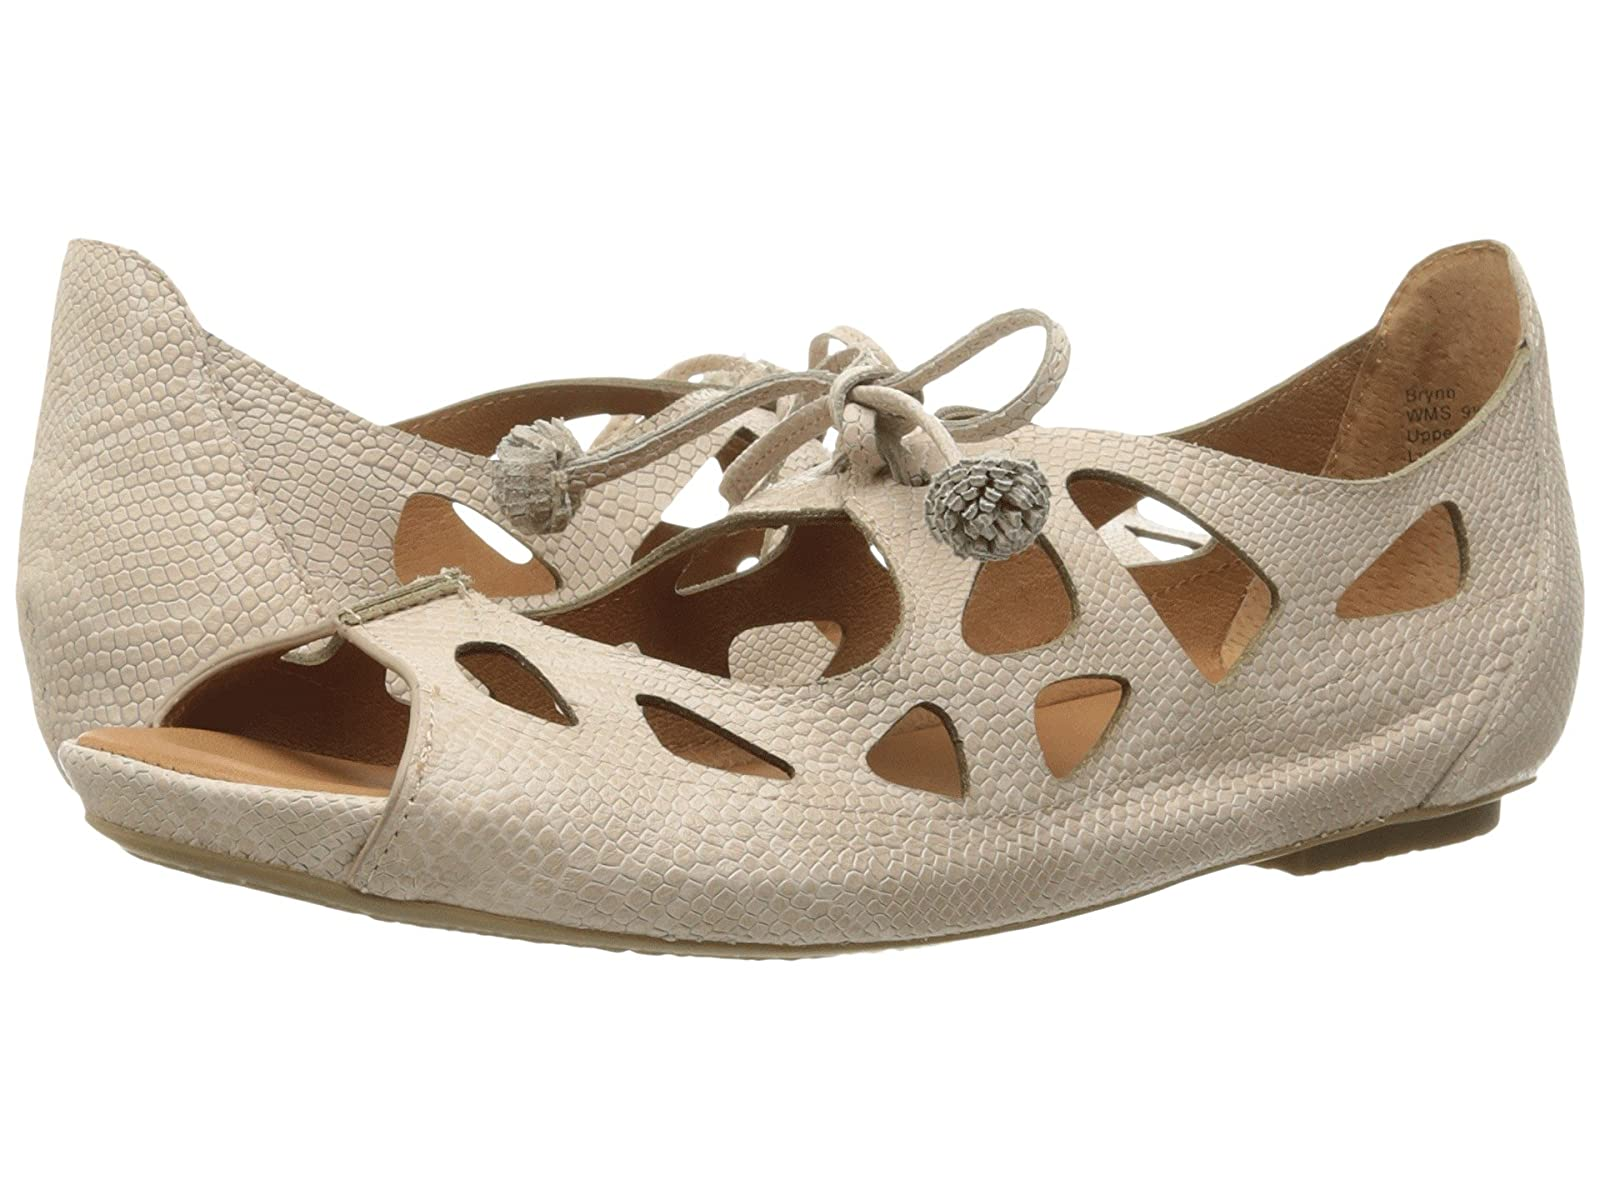 Gentle Souls by Kenneth Cole BrynnCheap and distinctive eye-catching shoes